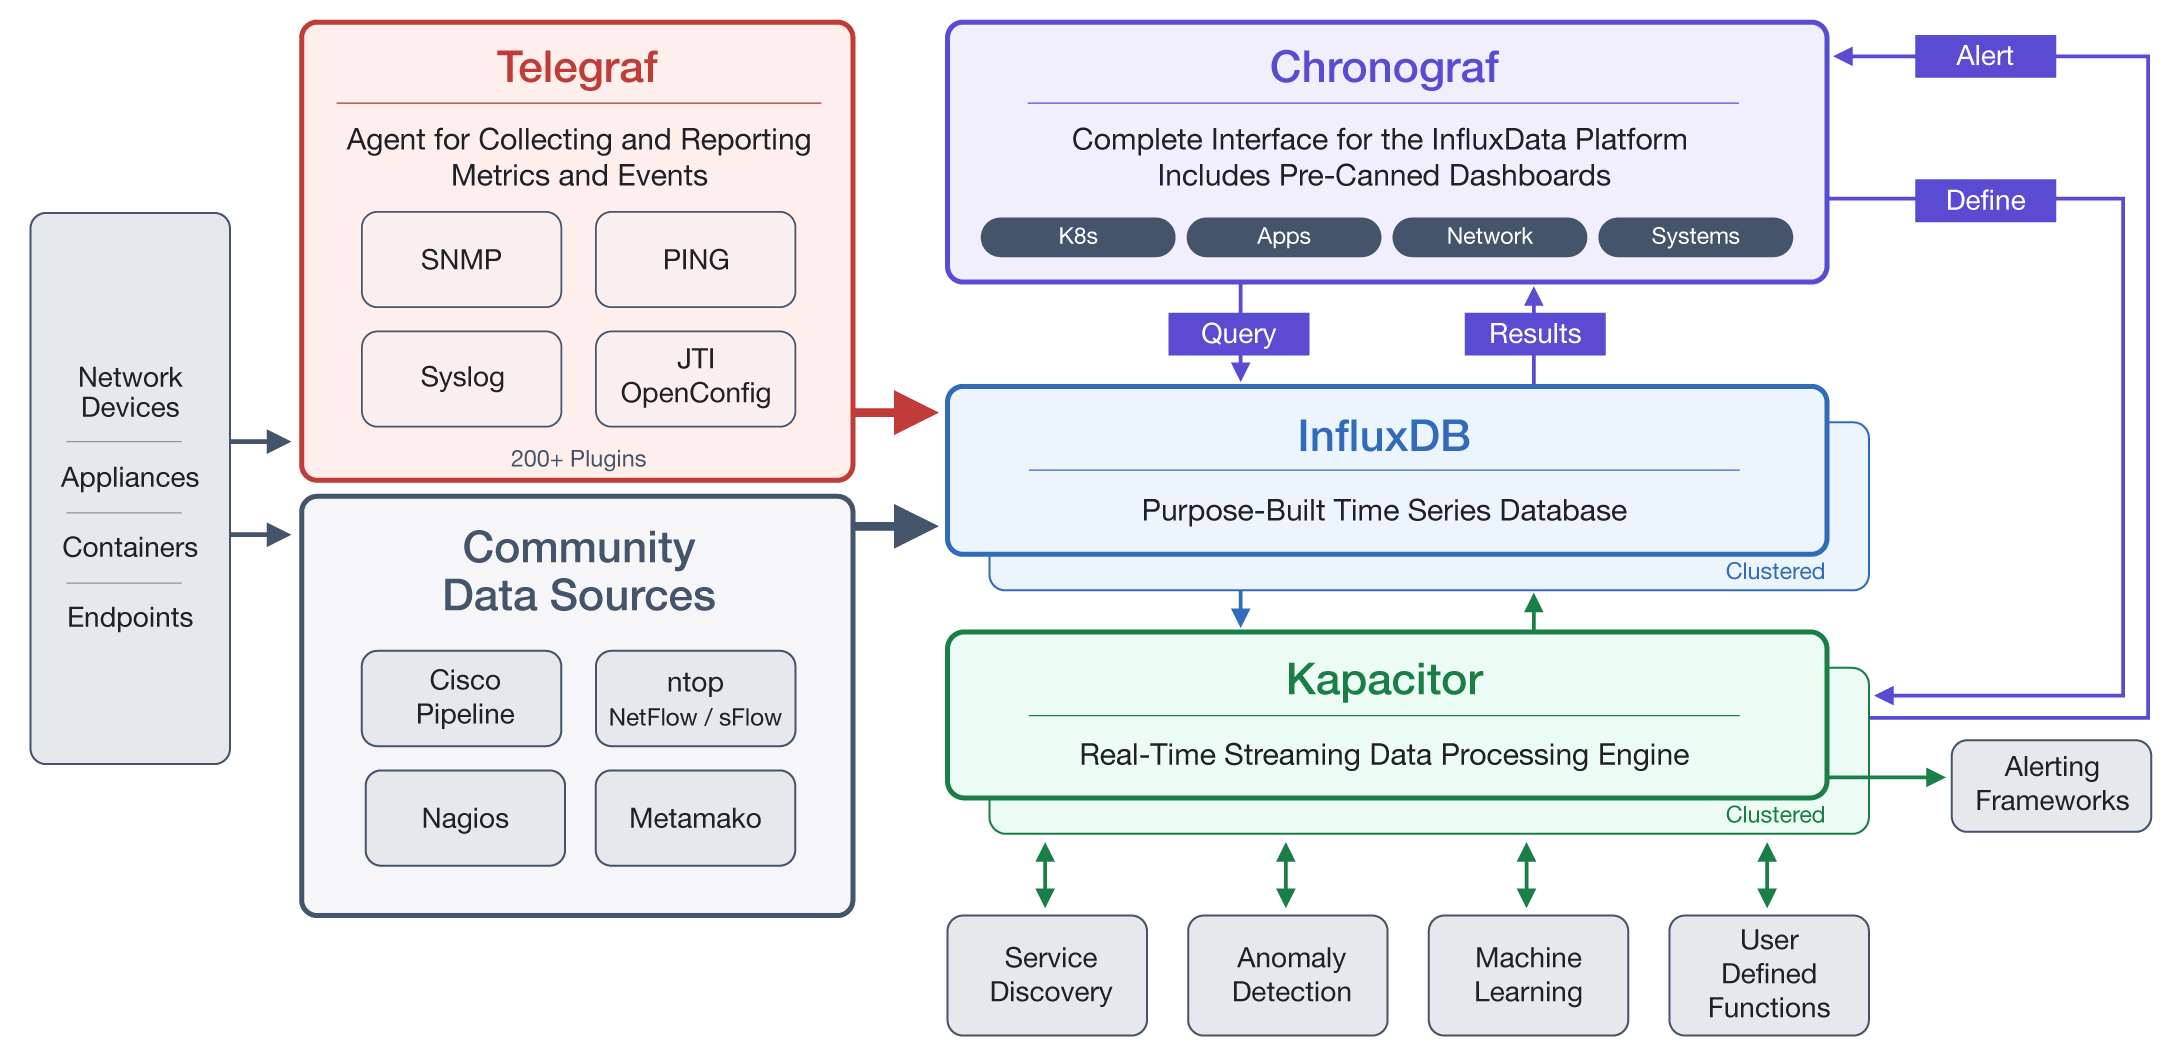 InfluxDB's TICK stack architecture, including Telegraf, Chronograf, and Kapacitor